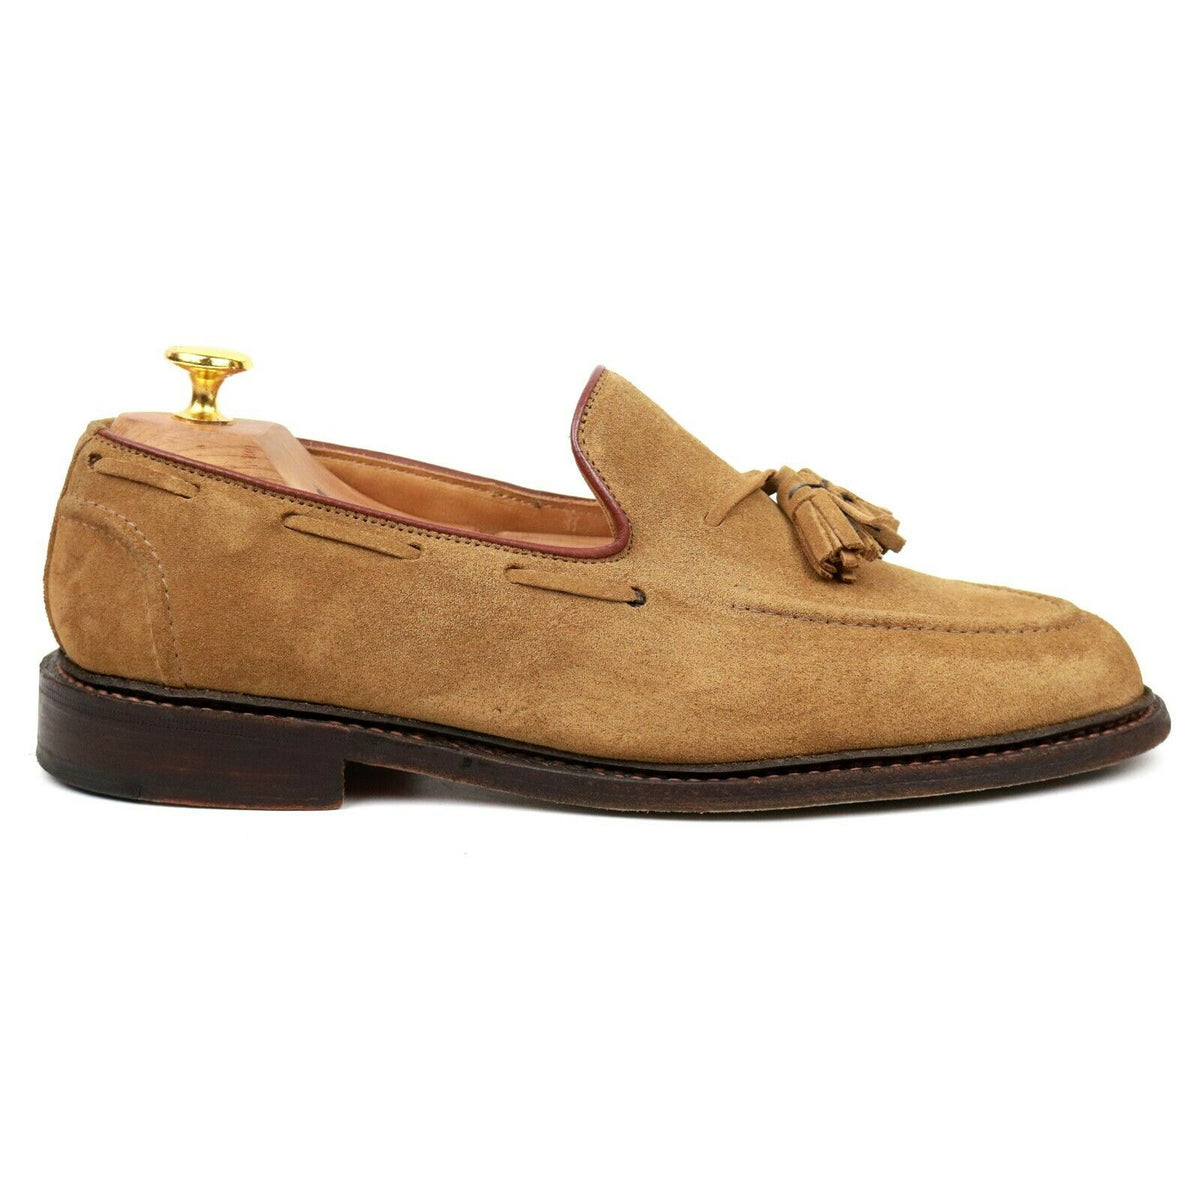 Tricker's 'Elton' Sand Brown Suede Tassel Loafers UK 7